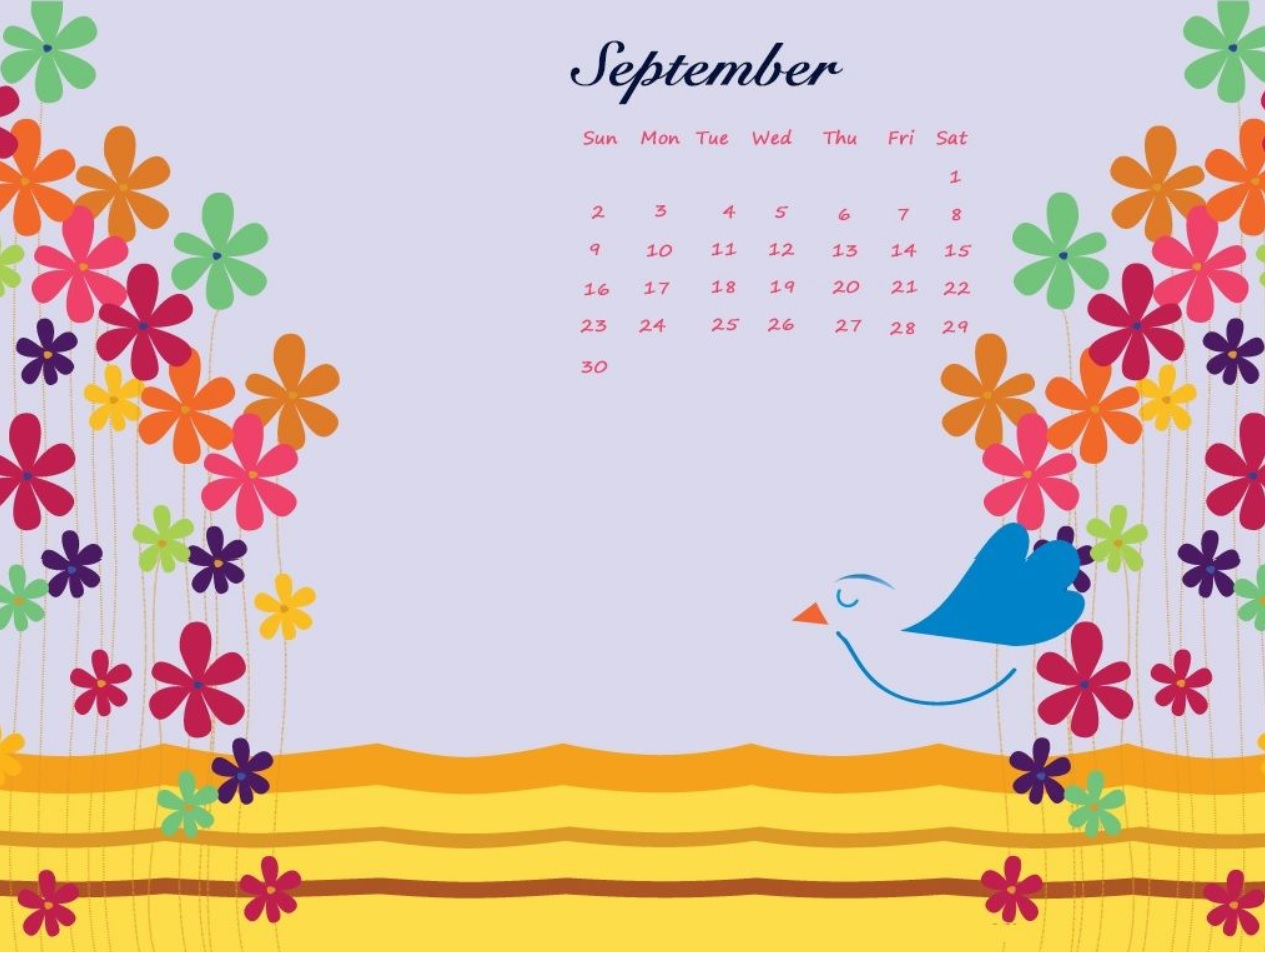 Floral September 2018 Calendar Wallpapers